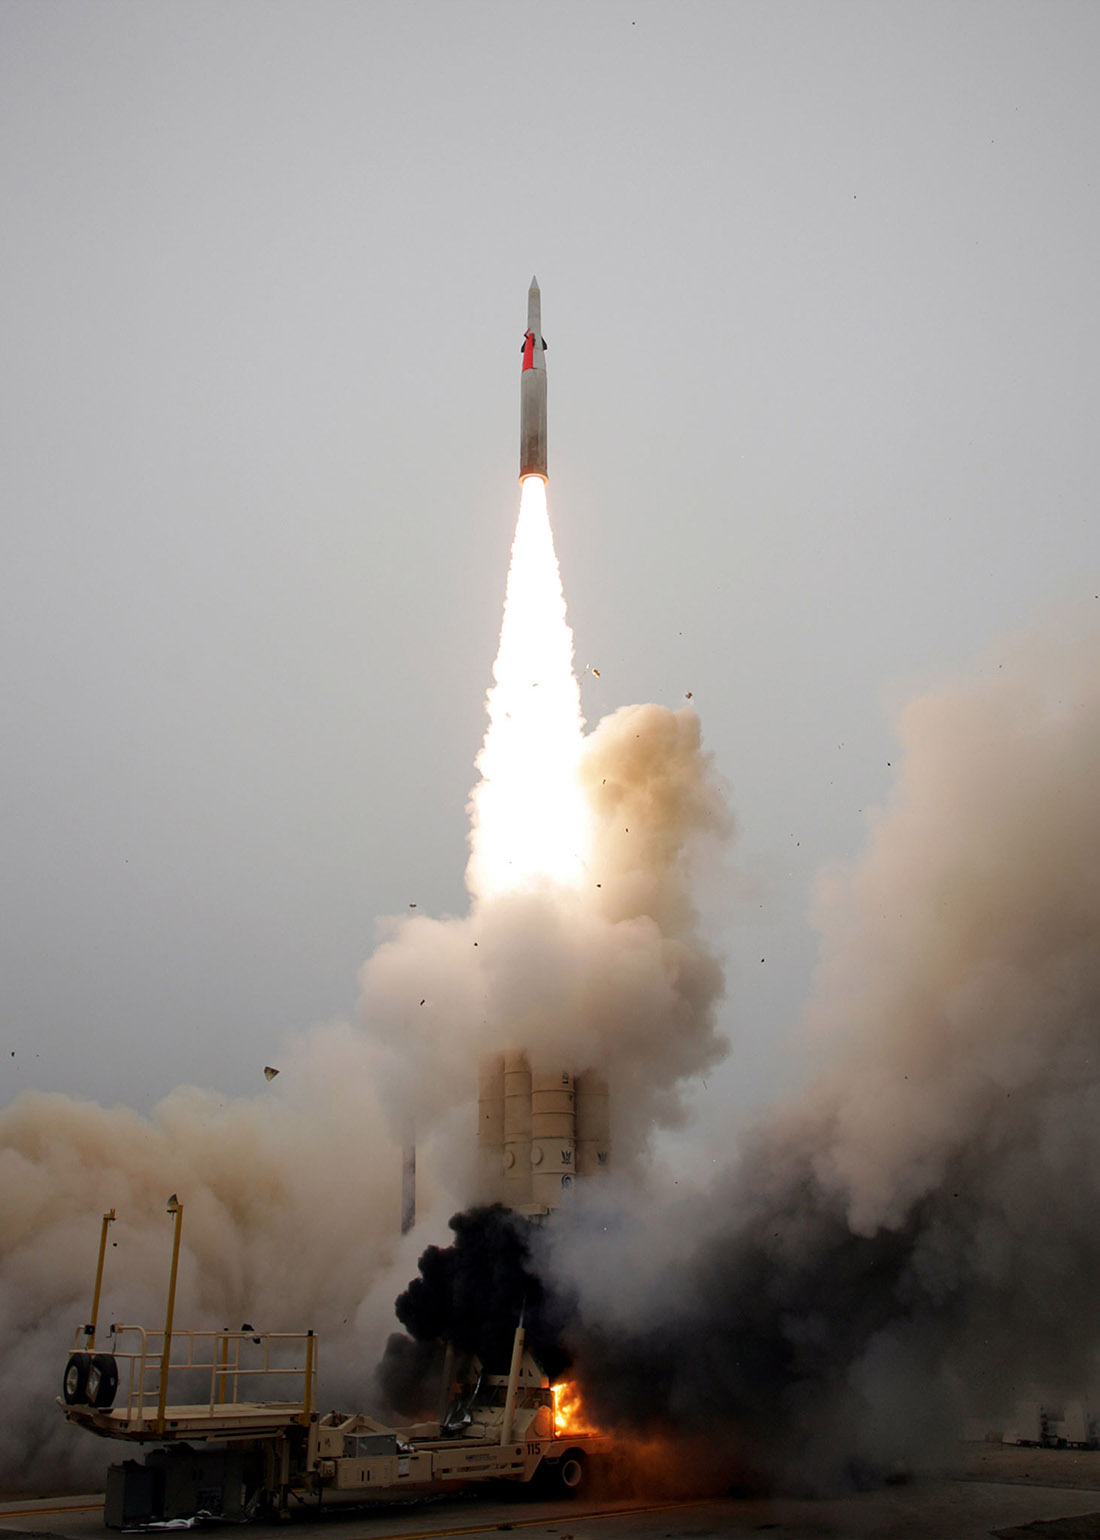 Israel Aerospace Industries Successfully Tested the Barak-8 Air & Missile Defense System 1